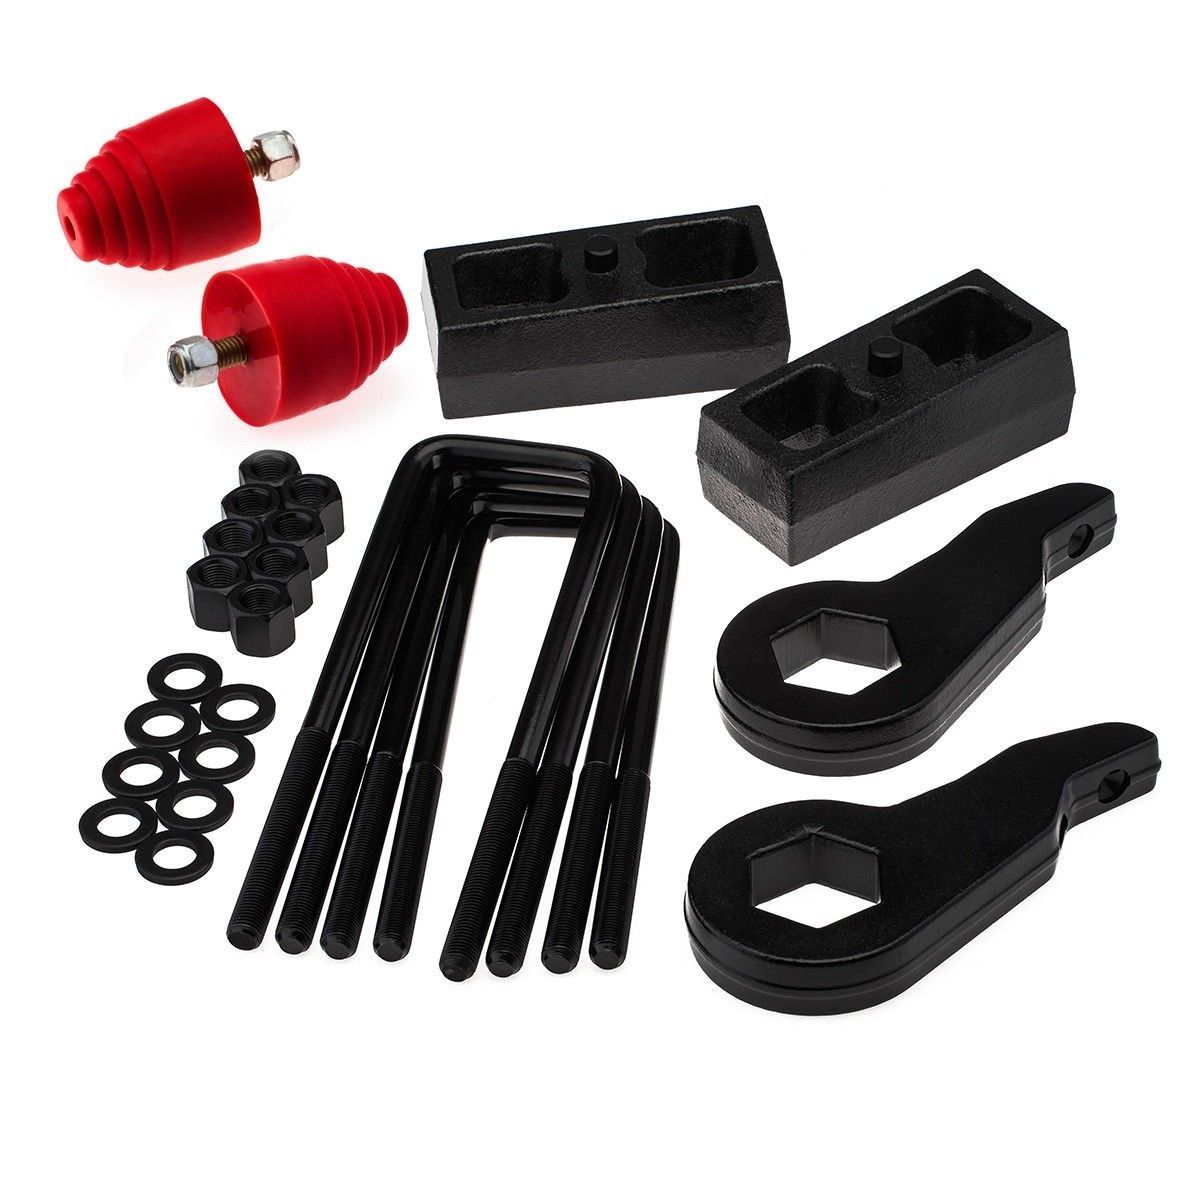 "Primary image for For Chevy Tahoe 95-99 4WD 3"" + 3"" Inch Torsion Bar Key Lift Kit with Bump Stop"